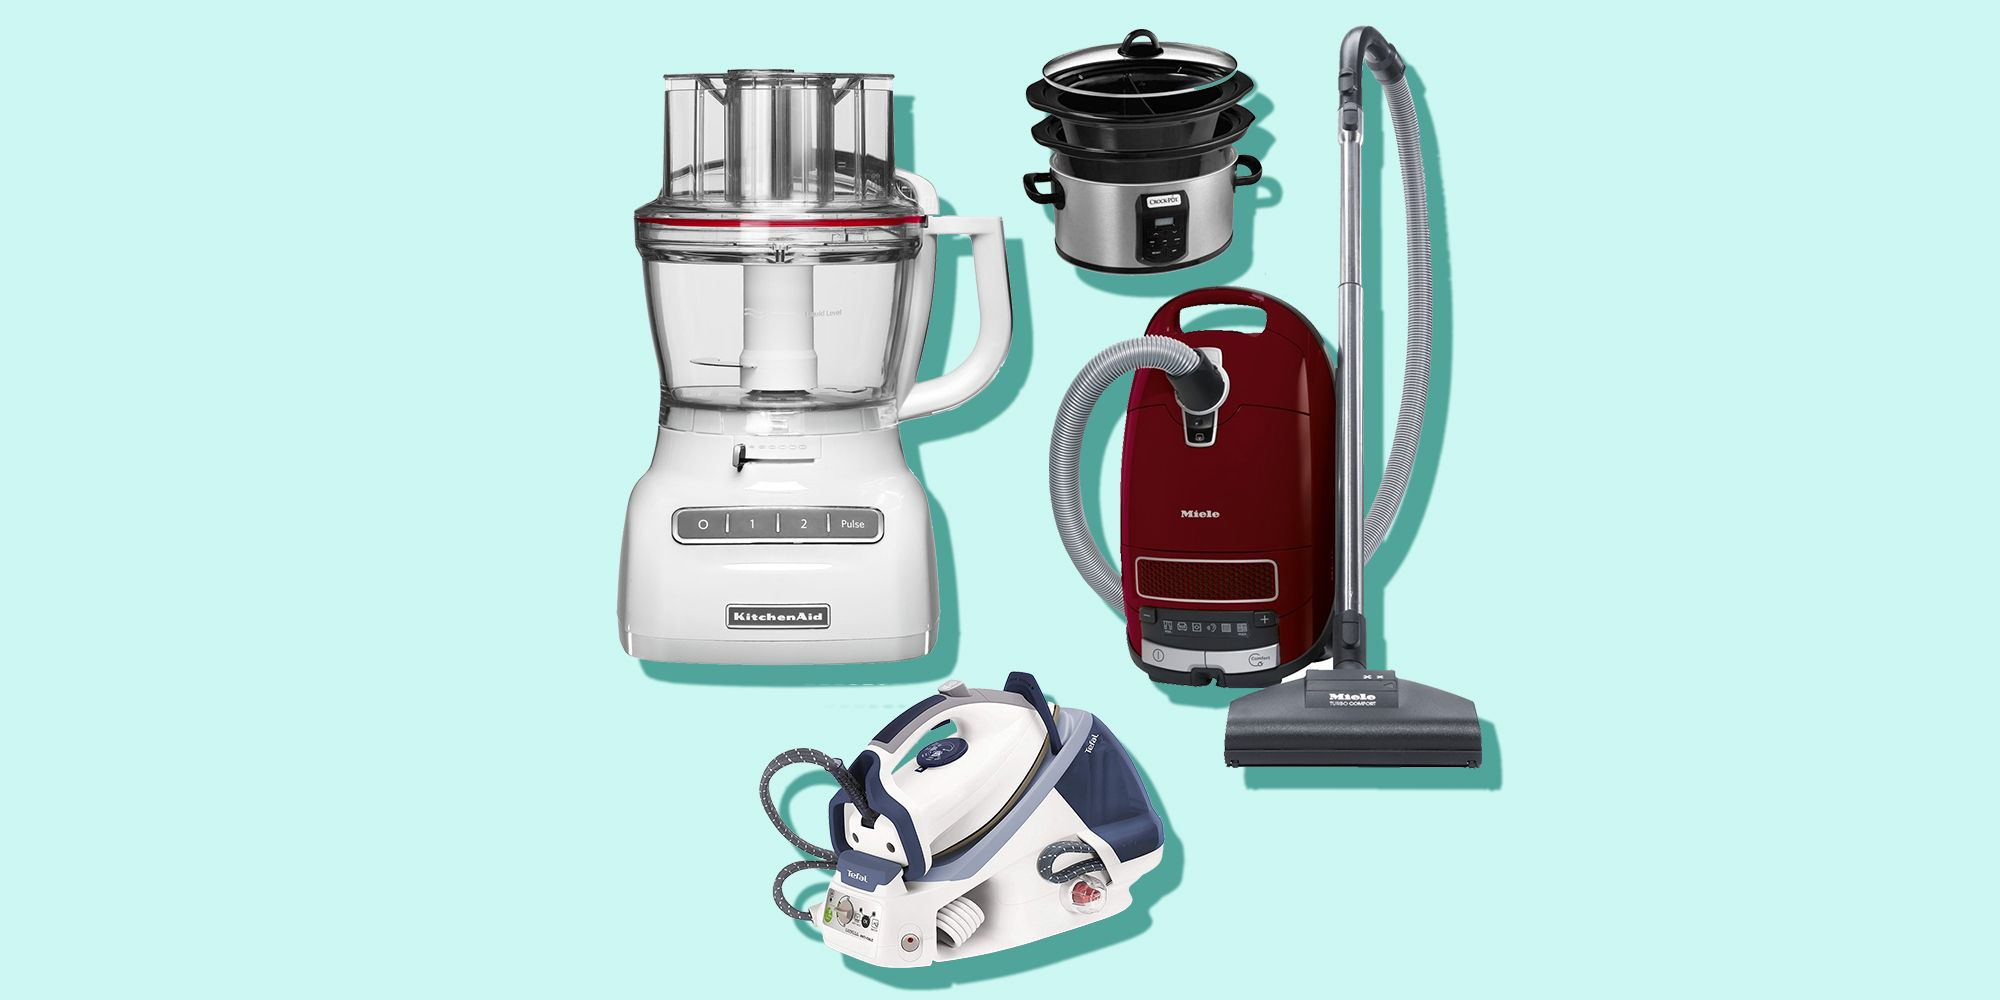 The best Amazon Prime Day appliance deals